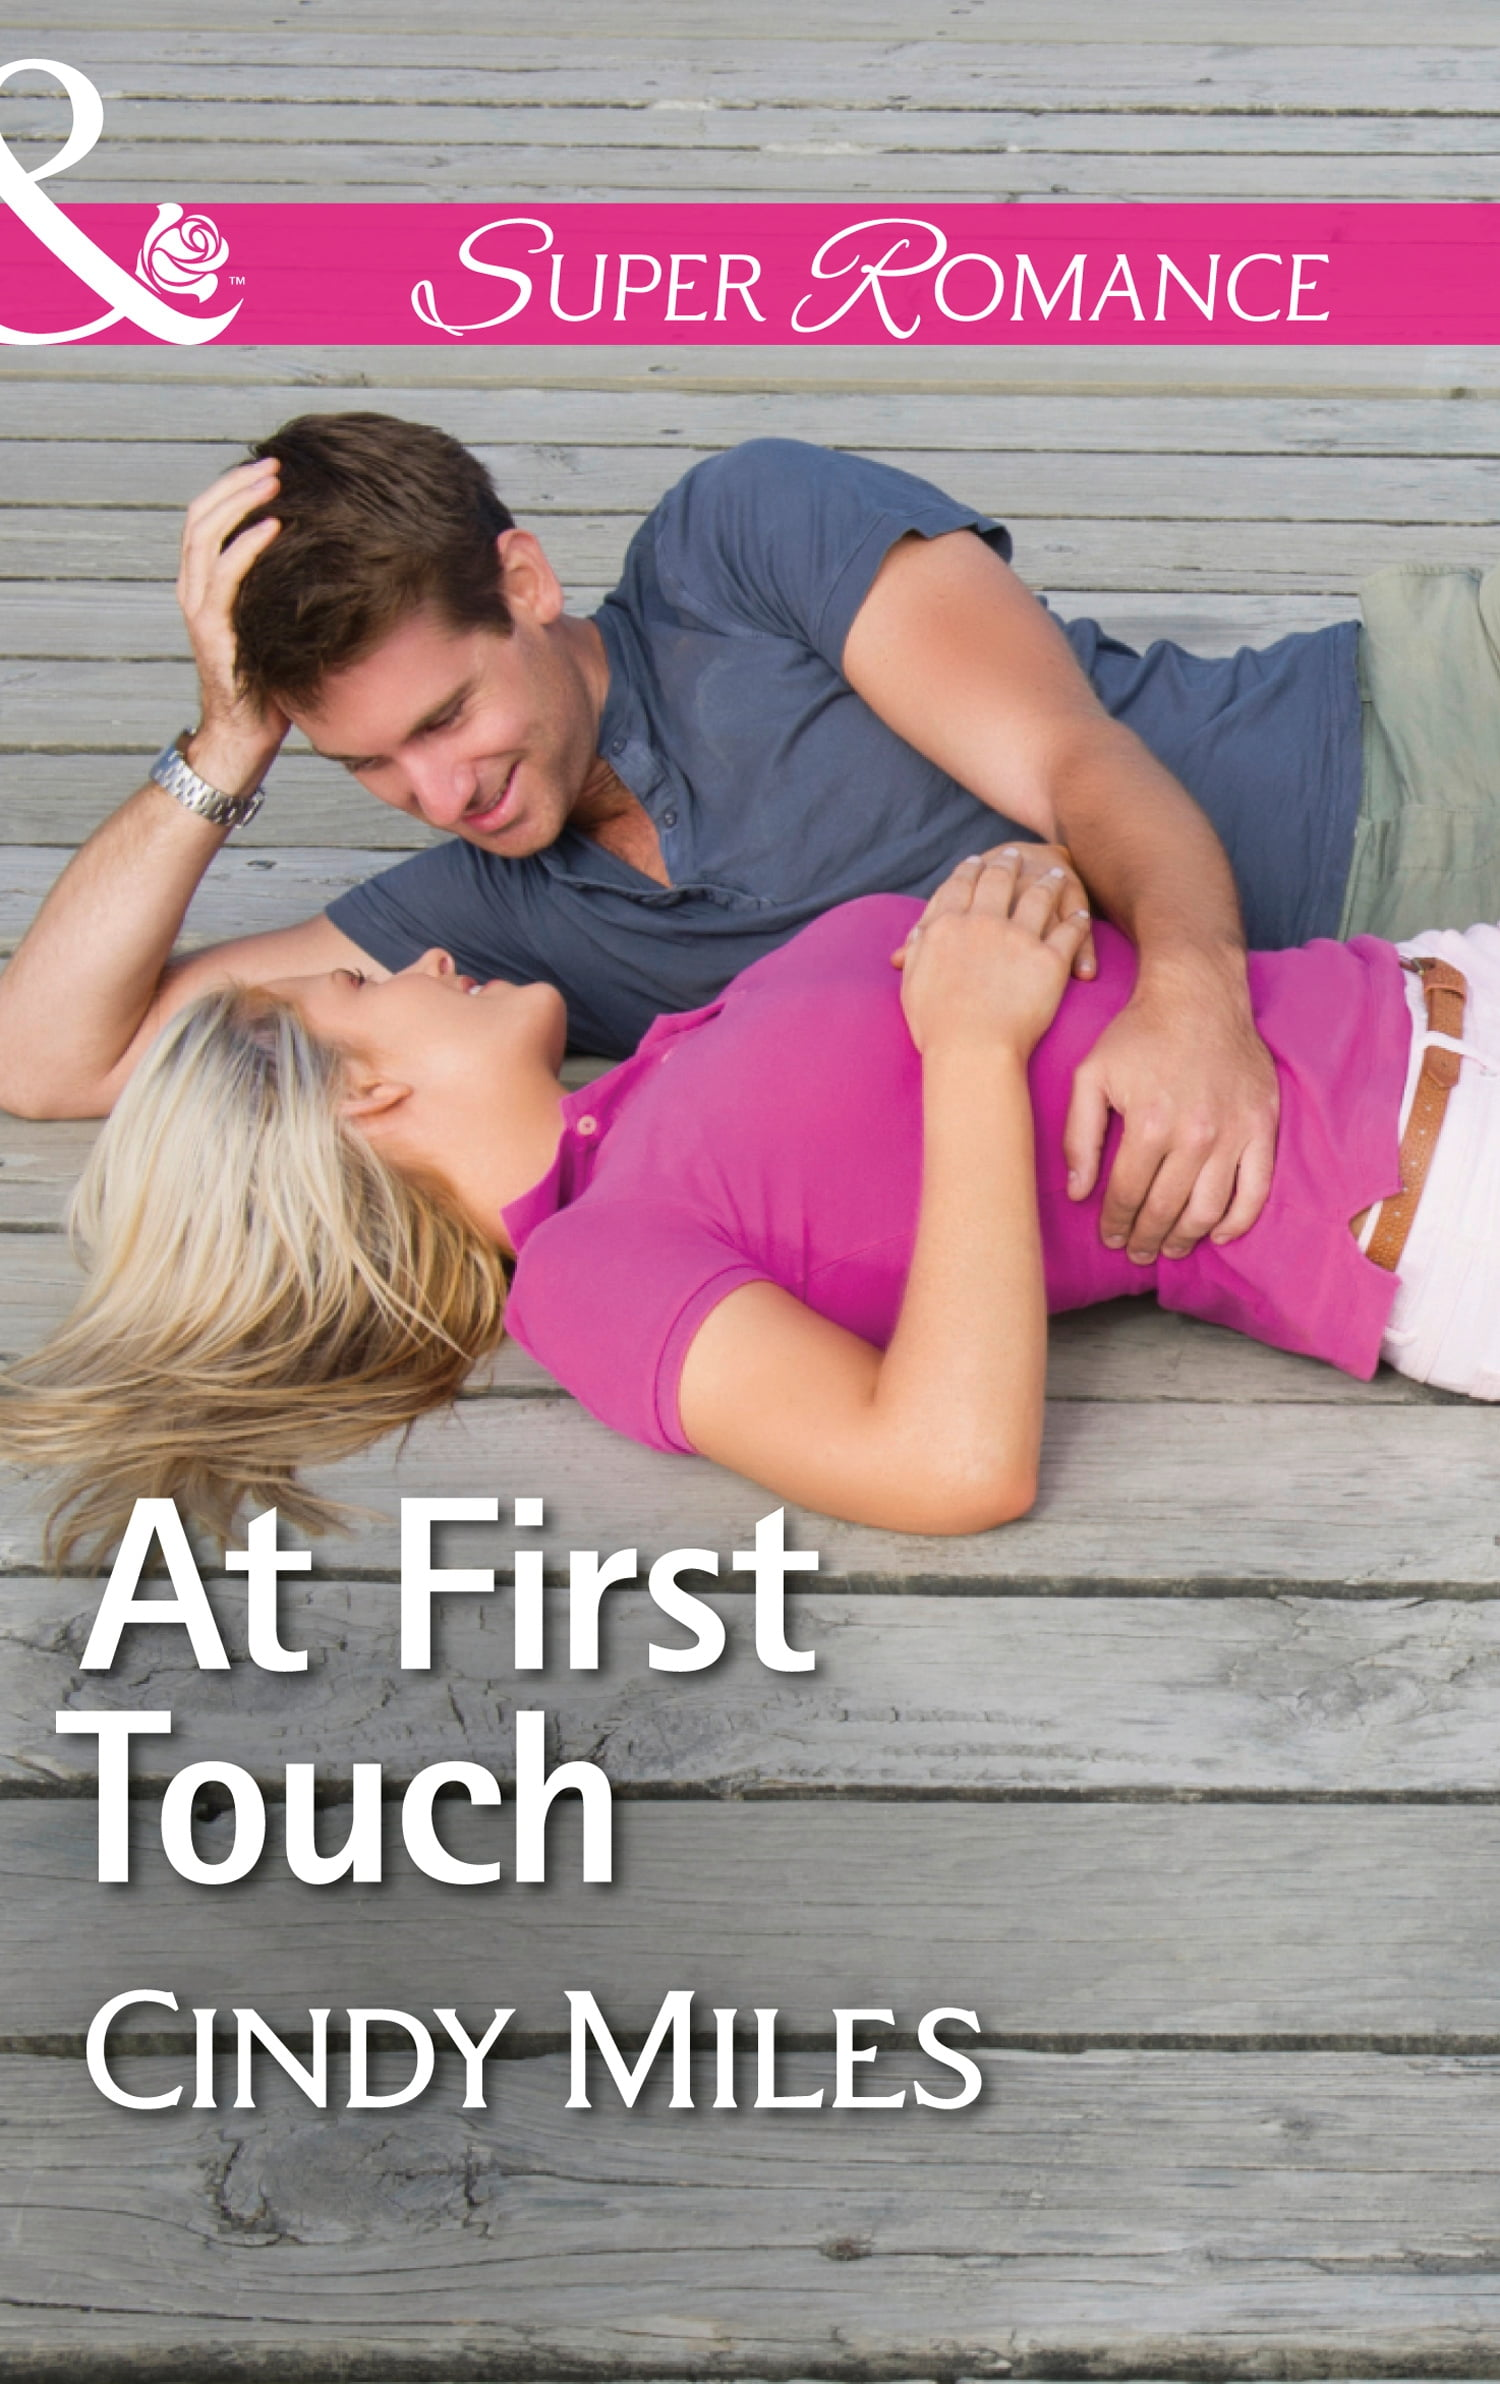 At First Touch (Mills & Boon Superromance) (The Malone Brothers, Book 2) PDF book by Cindy Miles: Description, discussion and reader ratings